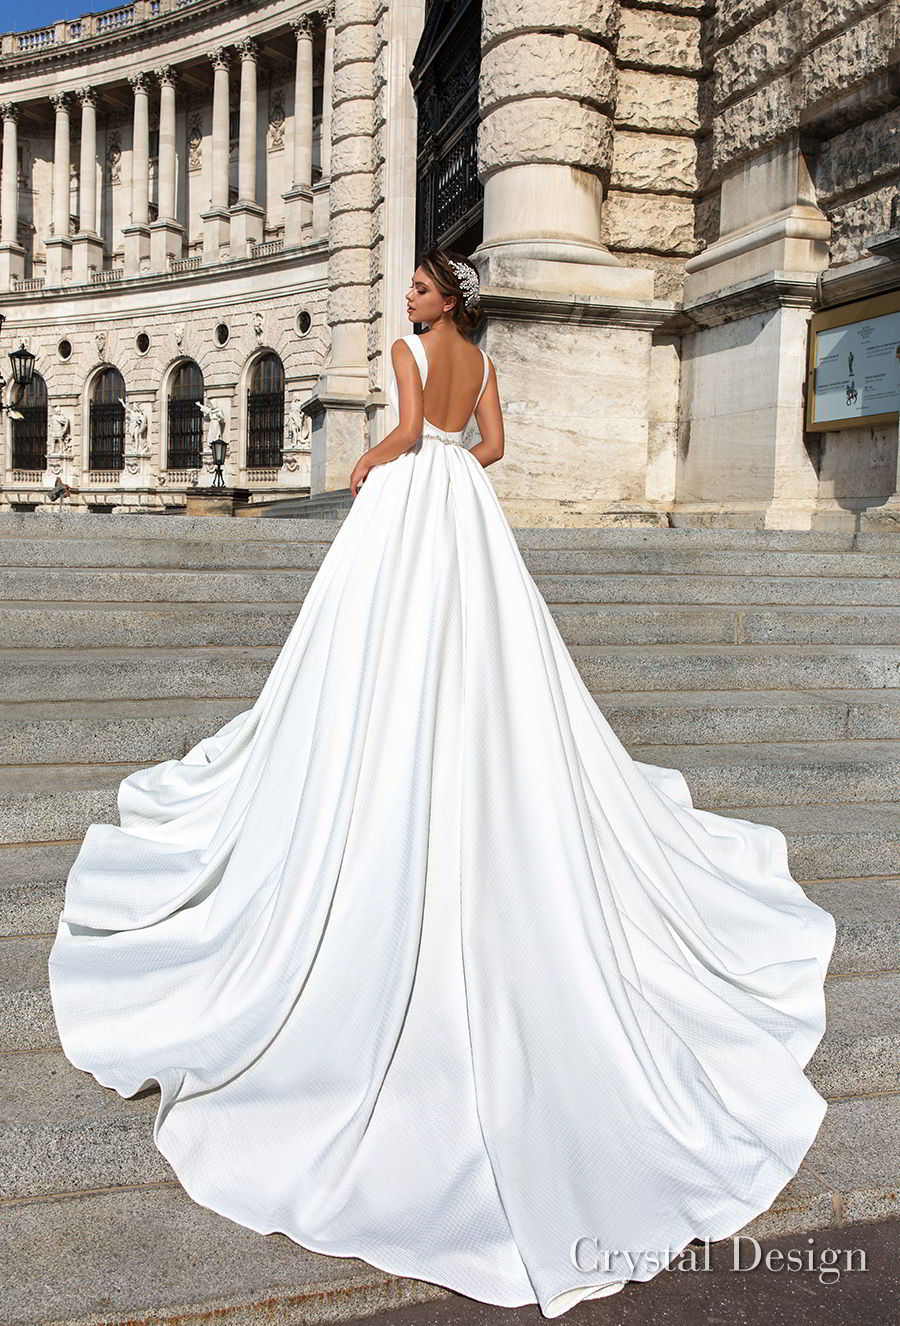 crystal design 2018 sleeveless deep v neck simple princess elegant ball gown a  line wedding dress open scoop back royal train (ivanna) bv